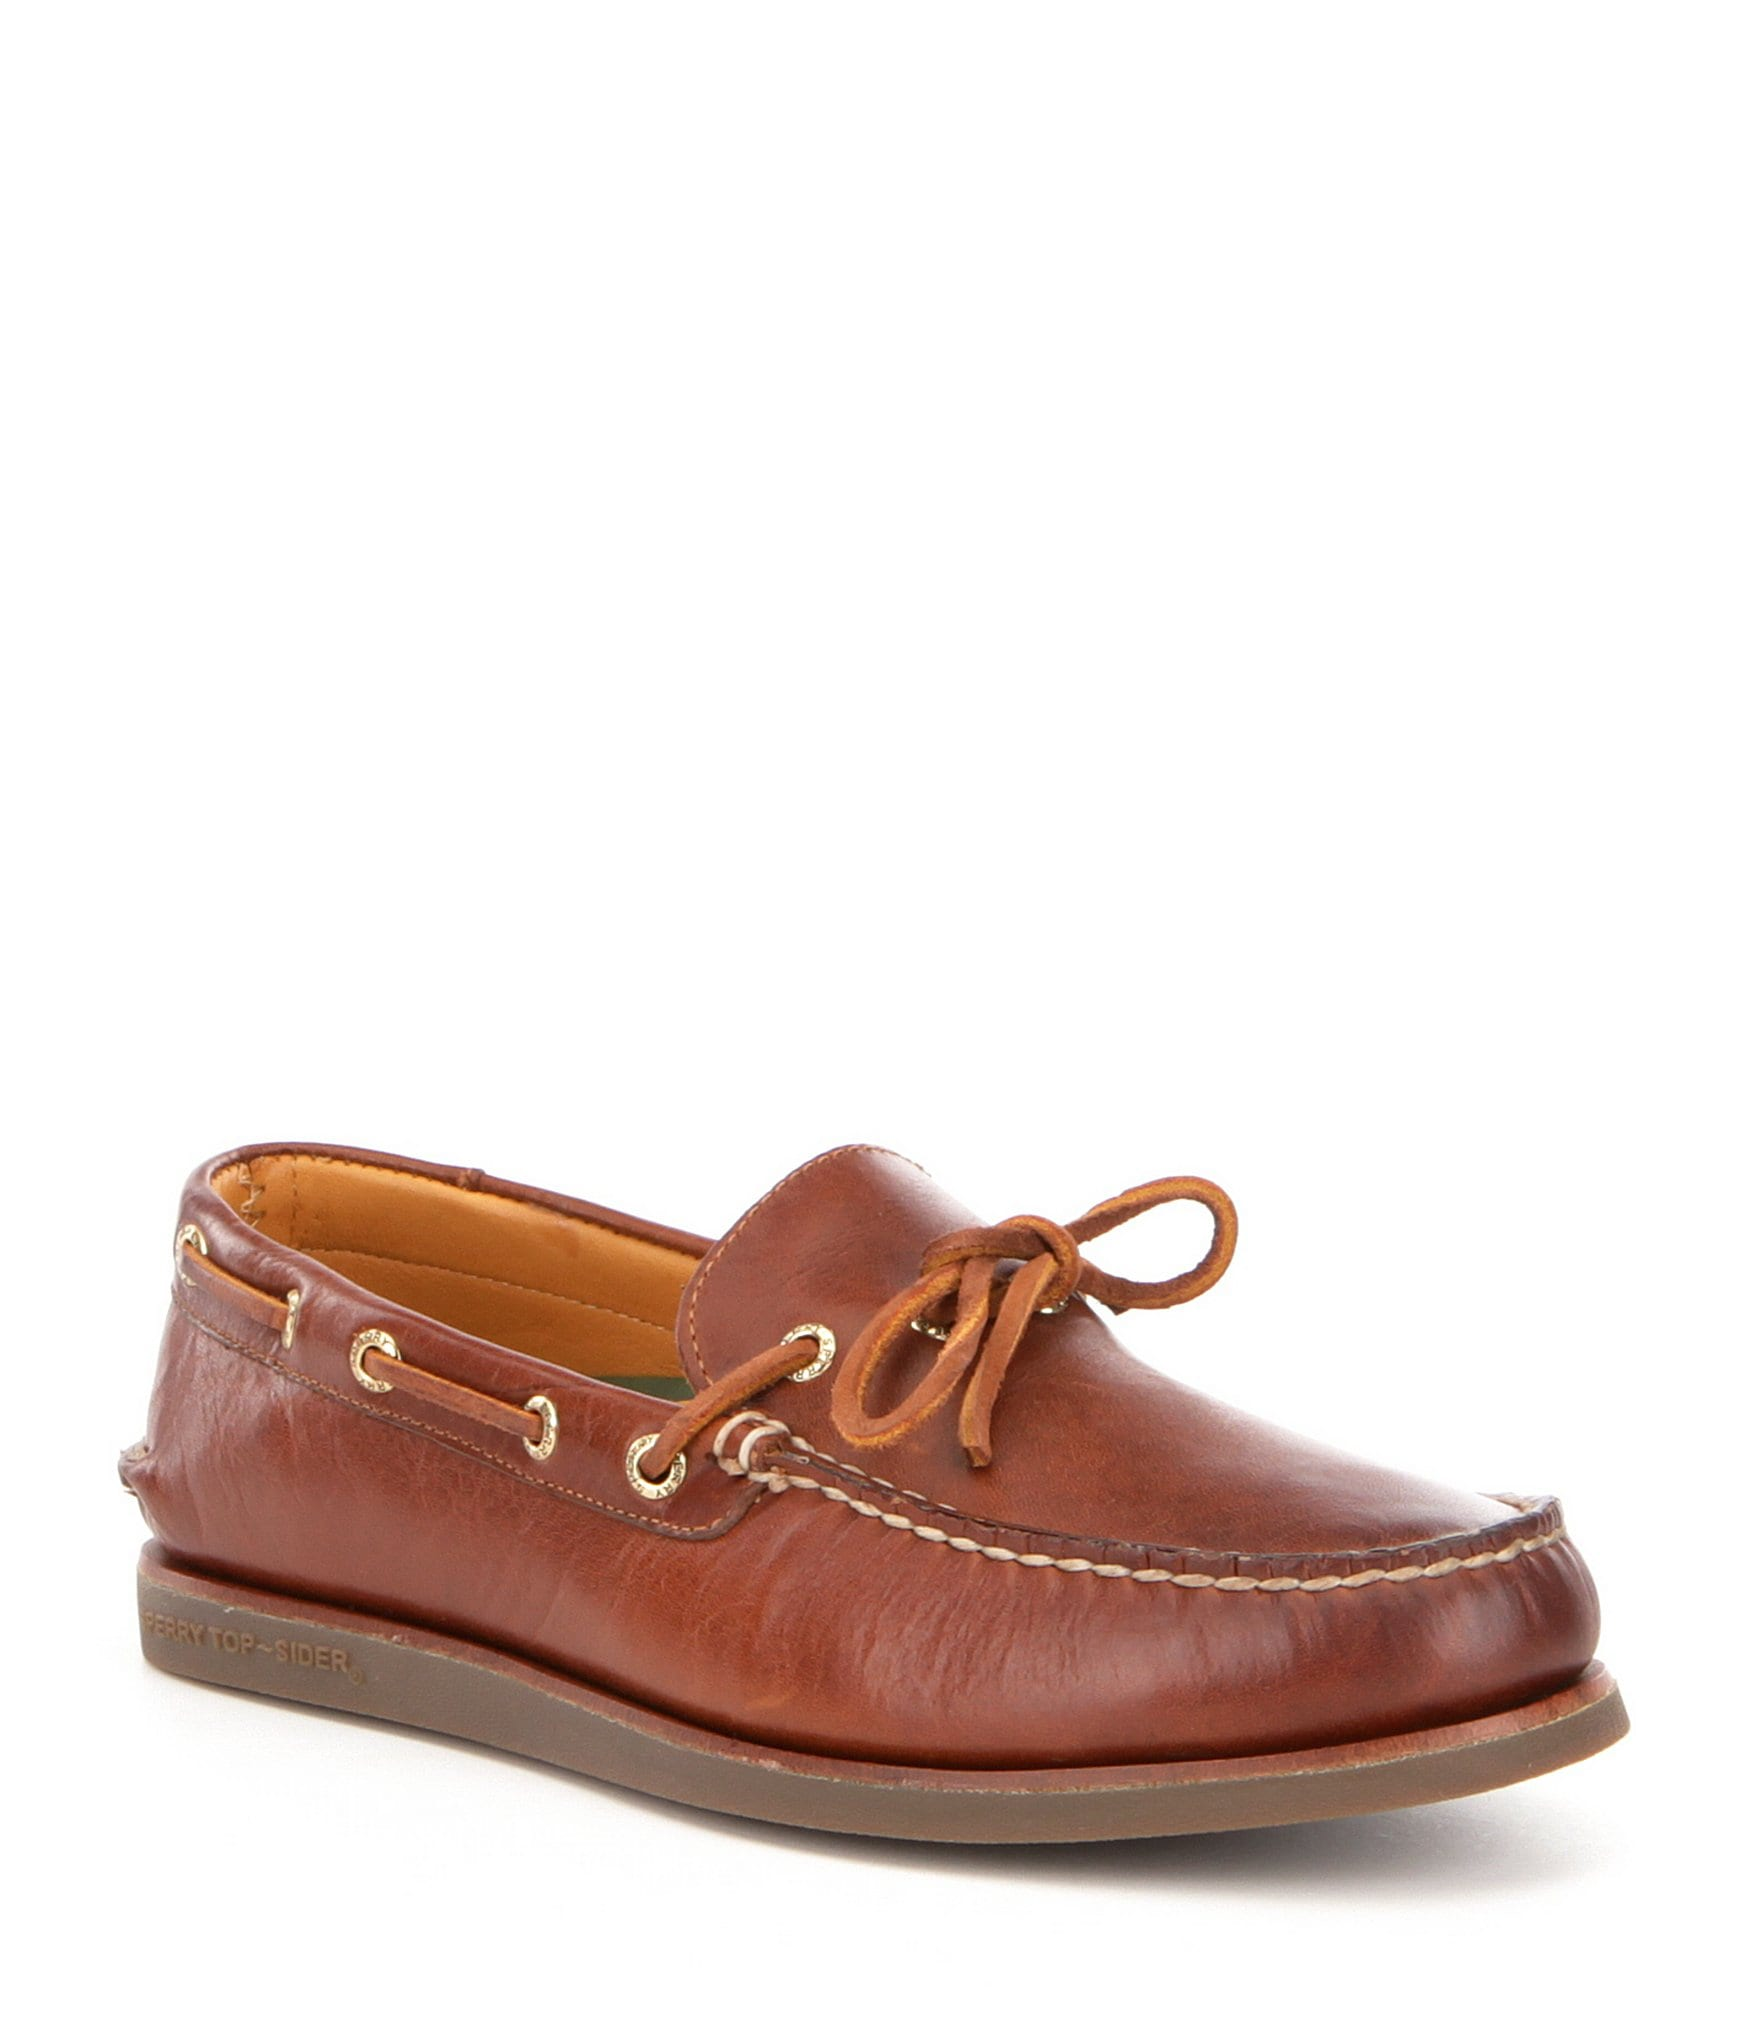 Sperry Men S Gold Authentic Original  Eye Wedge Boat Shoe